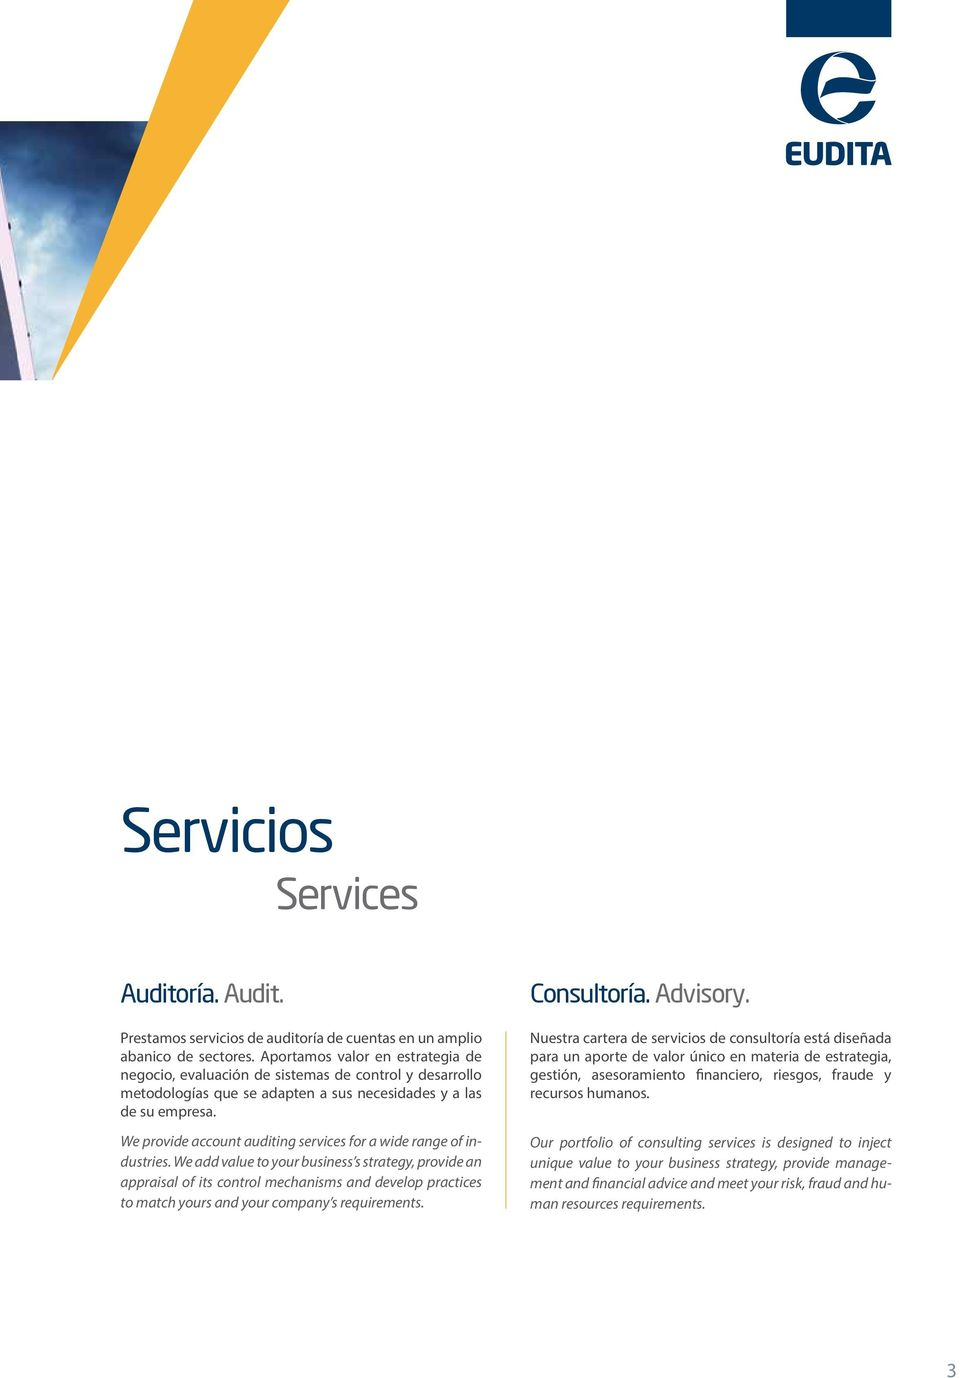 We provide account auditing services for a wide range of industries.